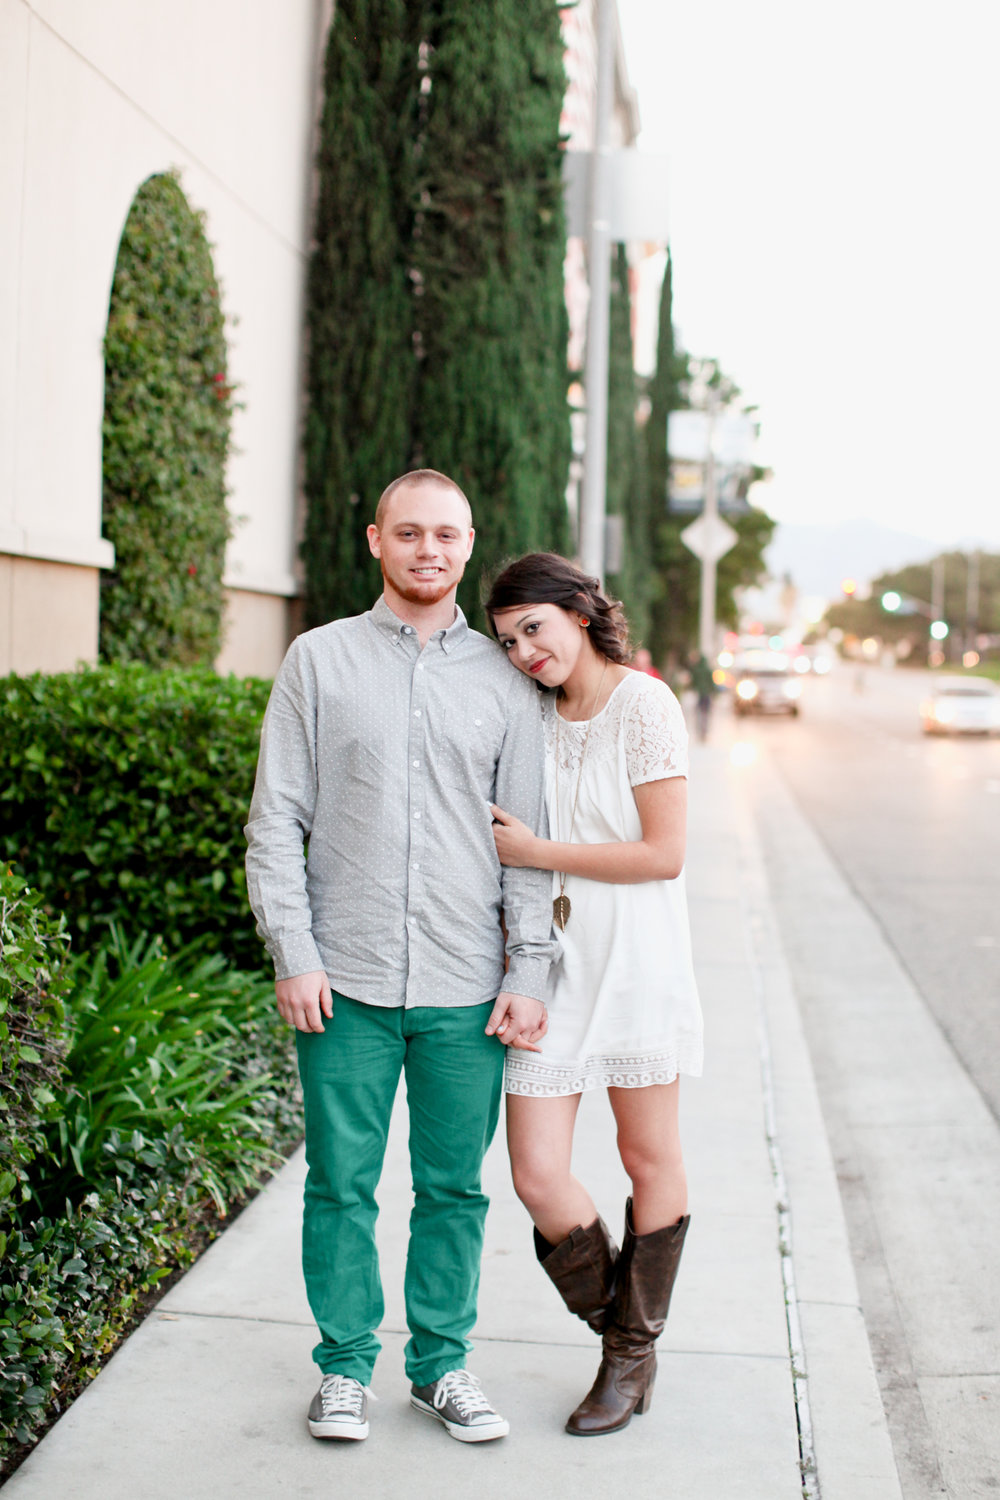 Lovisa Photo- Engagement Photography- The Grove, Los Angeles- California